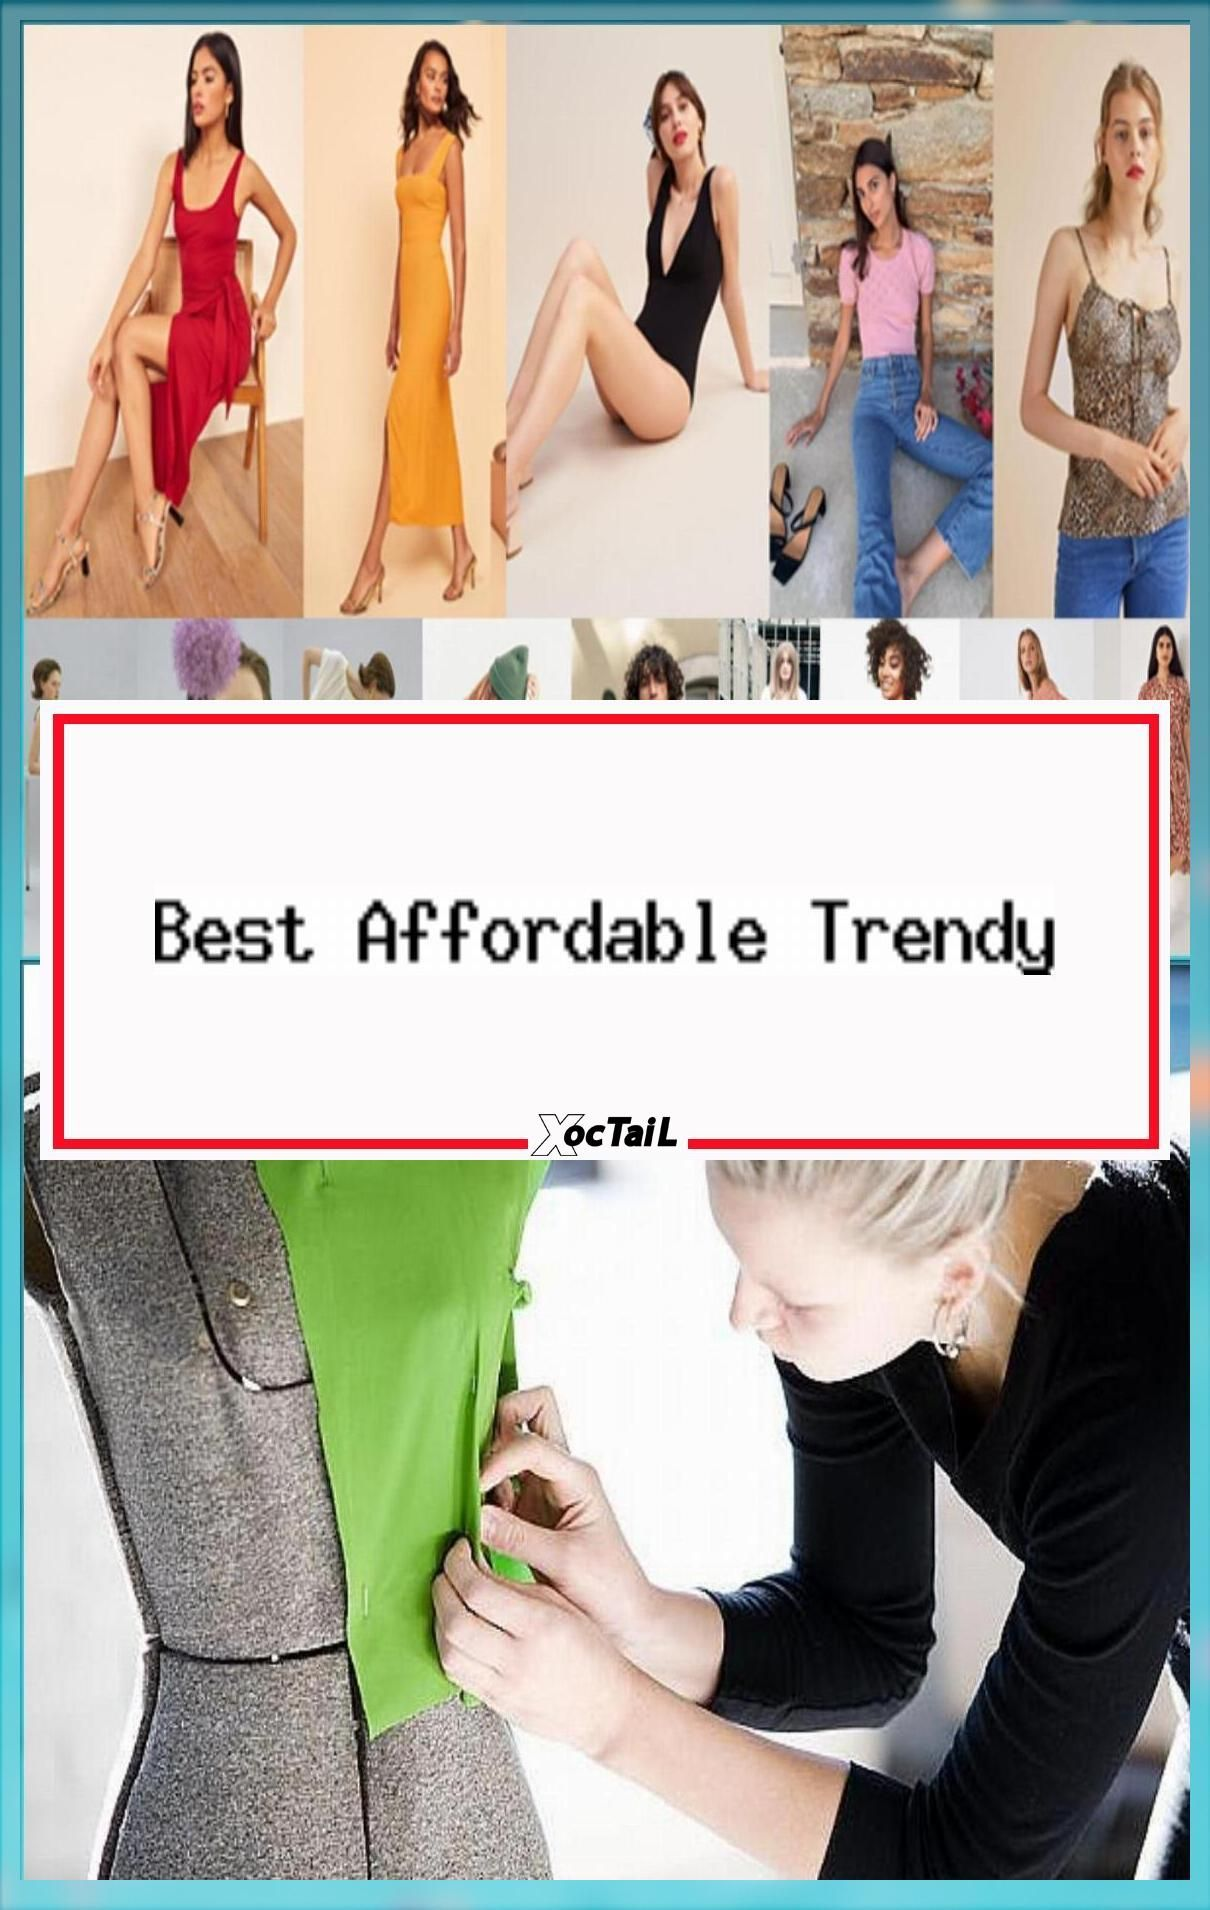 Best Affordable Trendy Fashion Designers 2019 10 Buckz Designer Job Description Clothes Designers Clo In 2020 Fashion Design Famous Fashion Fashion Designers Famous